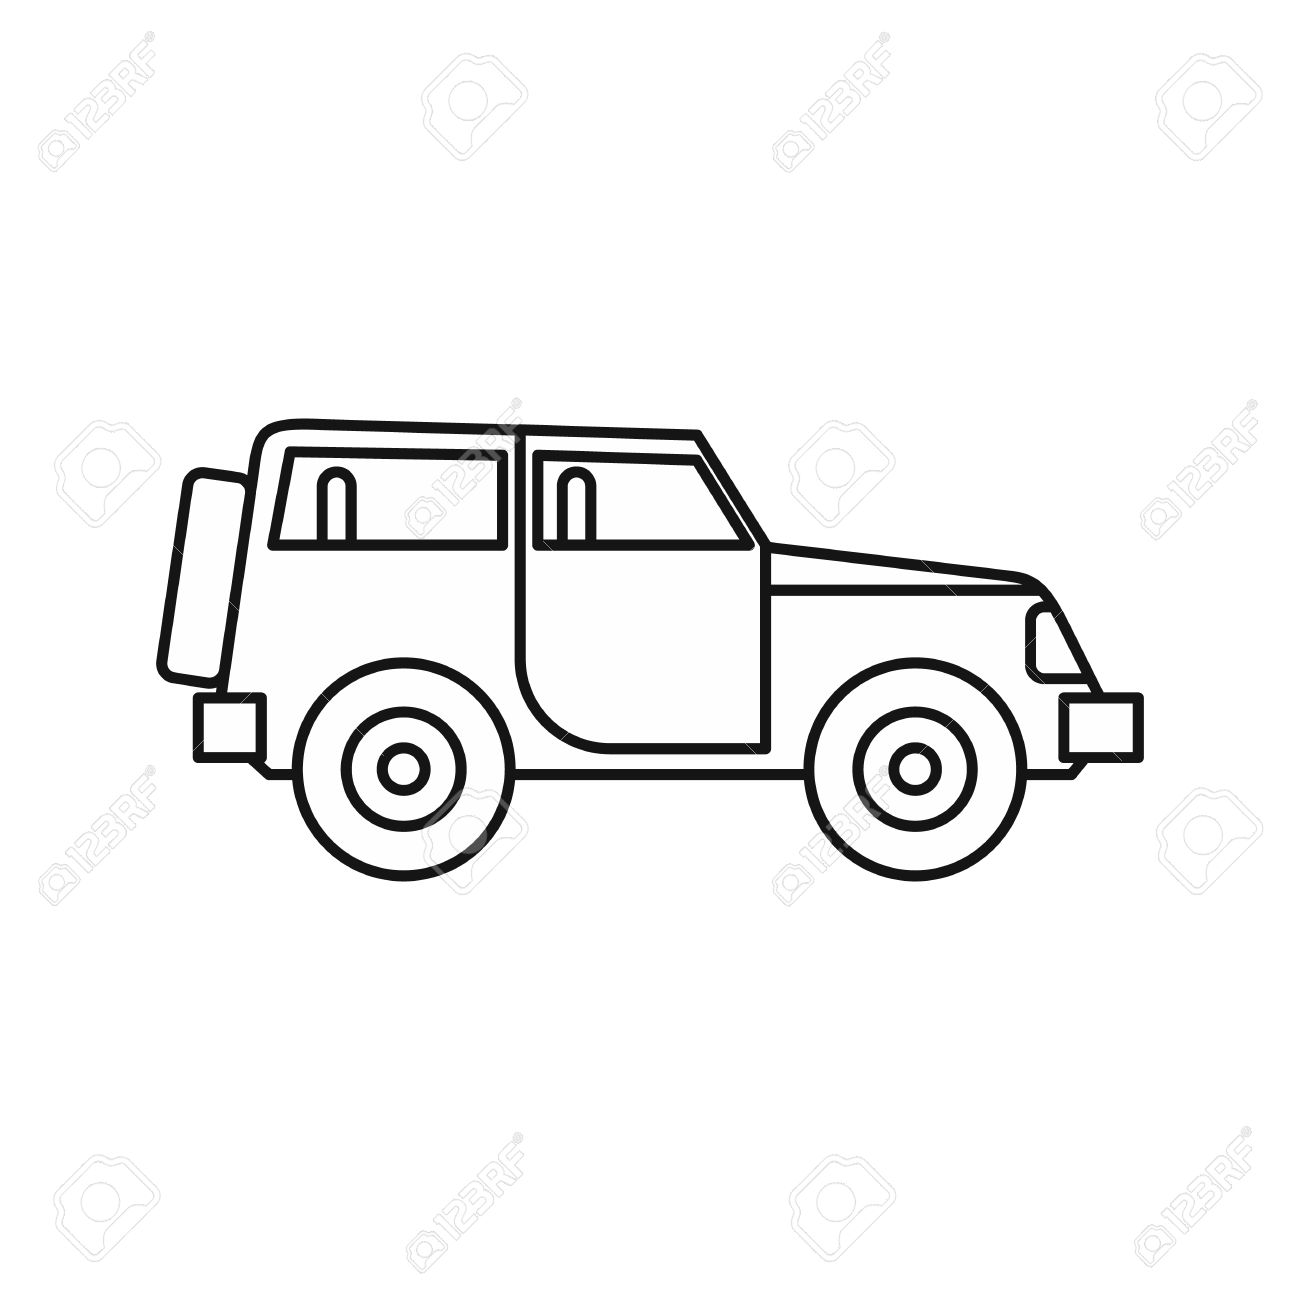 jeep icon in outline style on a white background vector illustration